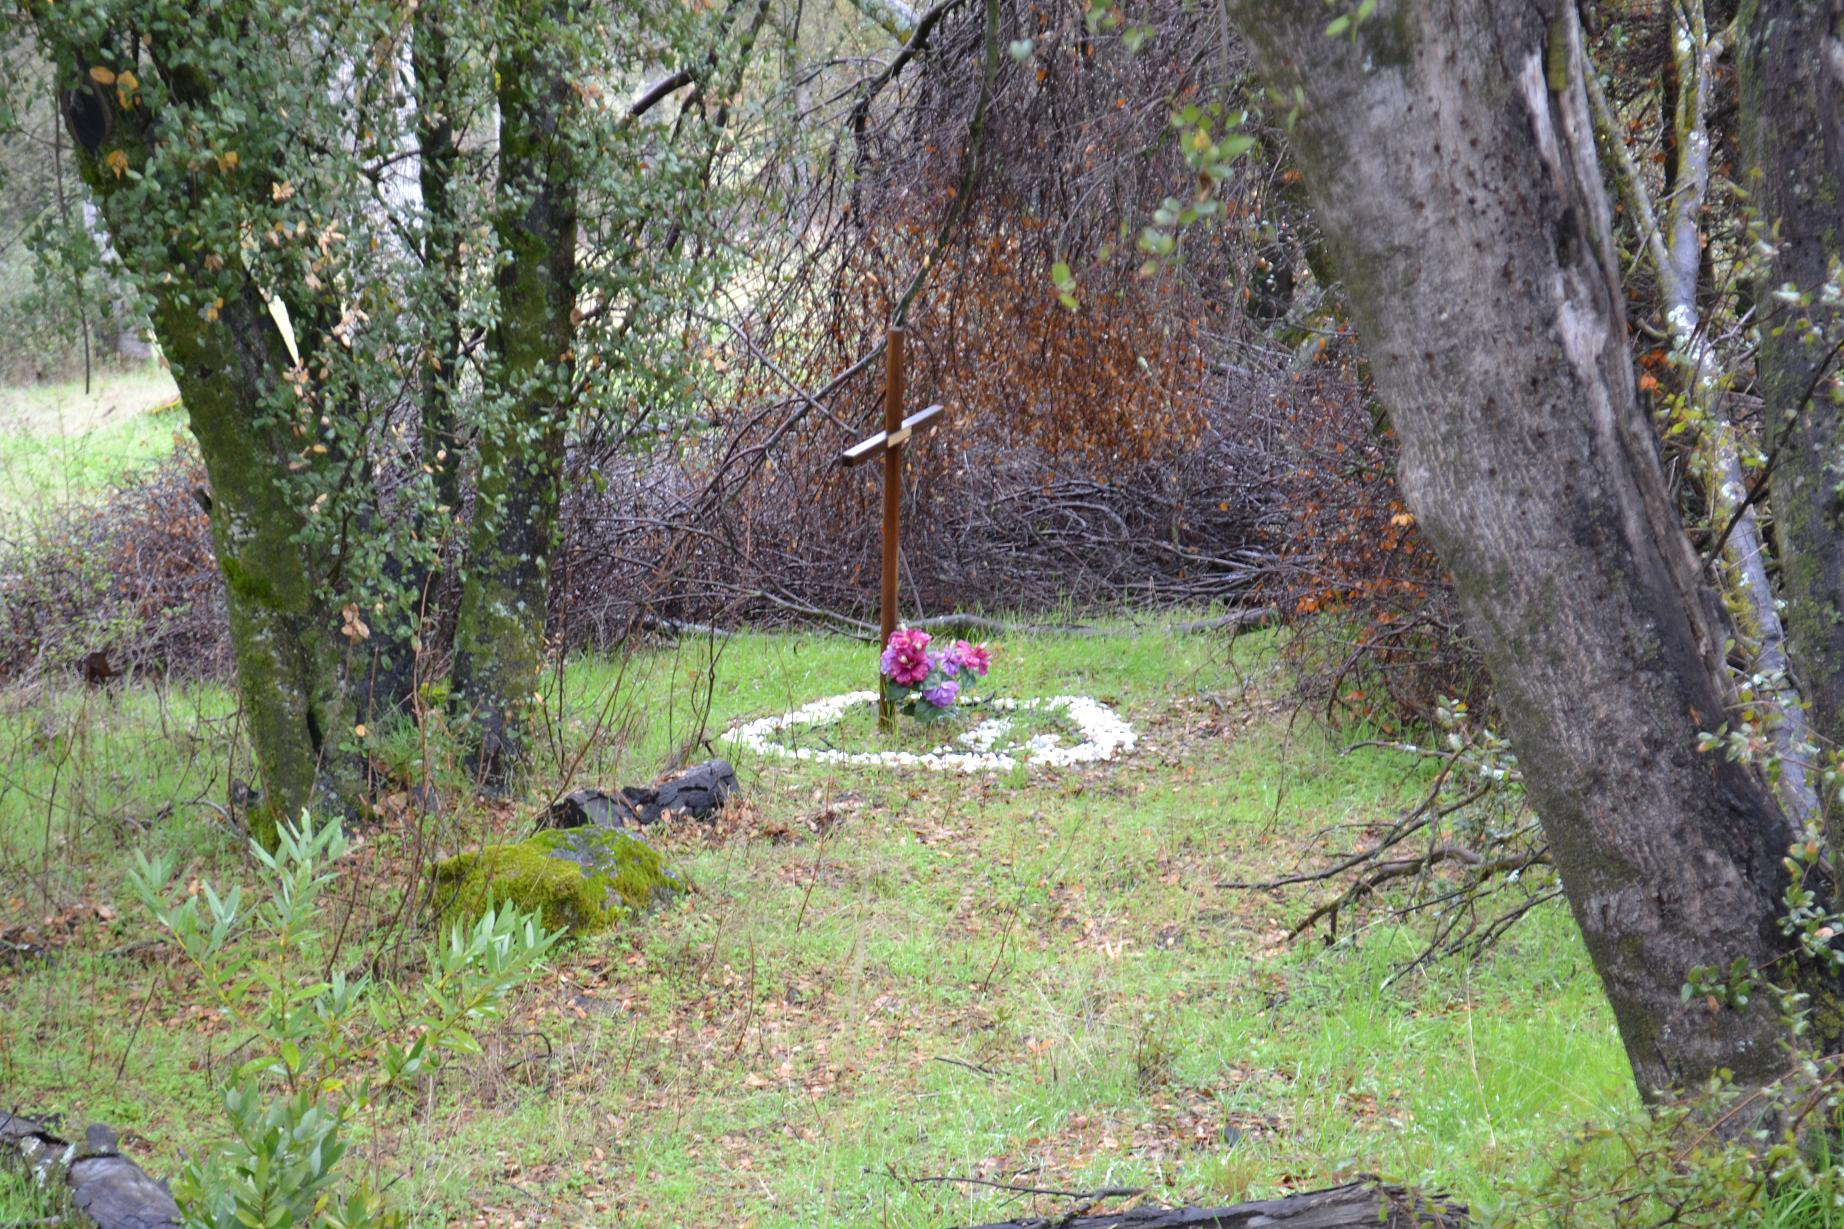 Monument to Ian Raymond Lewis just off the road near accident